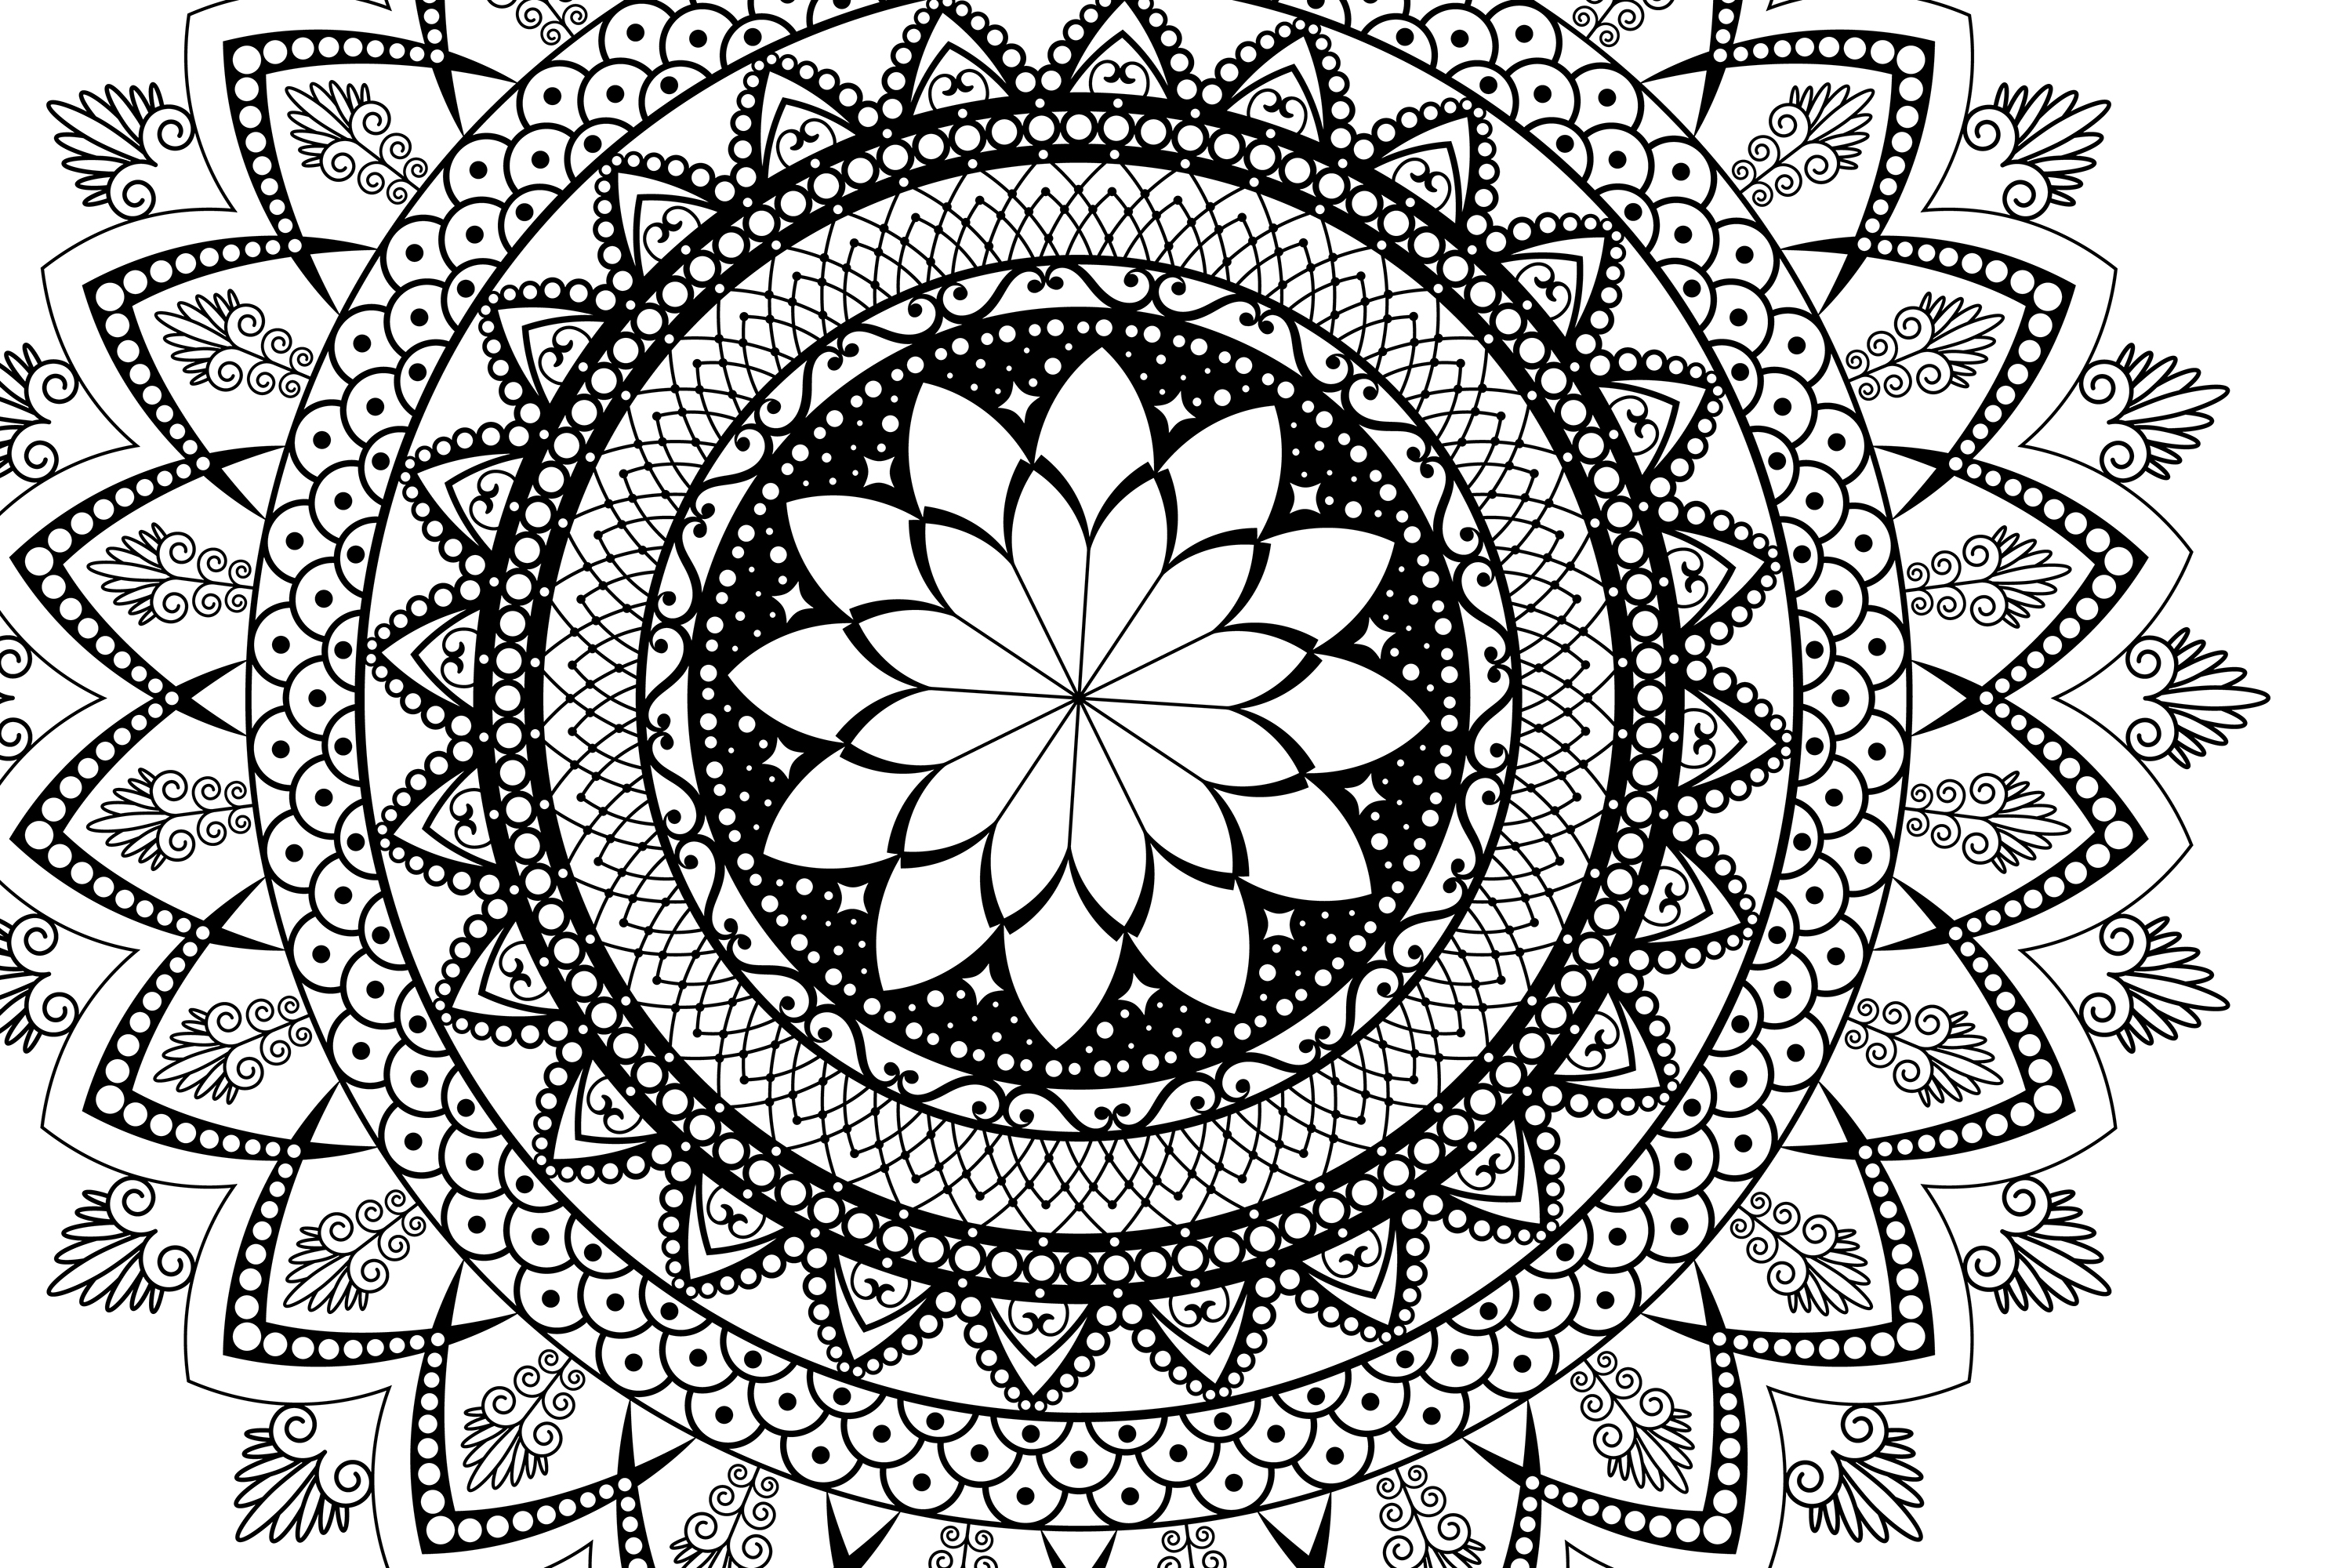 Mandala svg Circle file | Mandala clip art example image 3